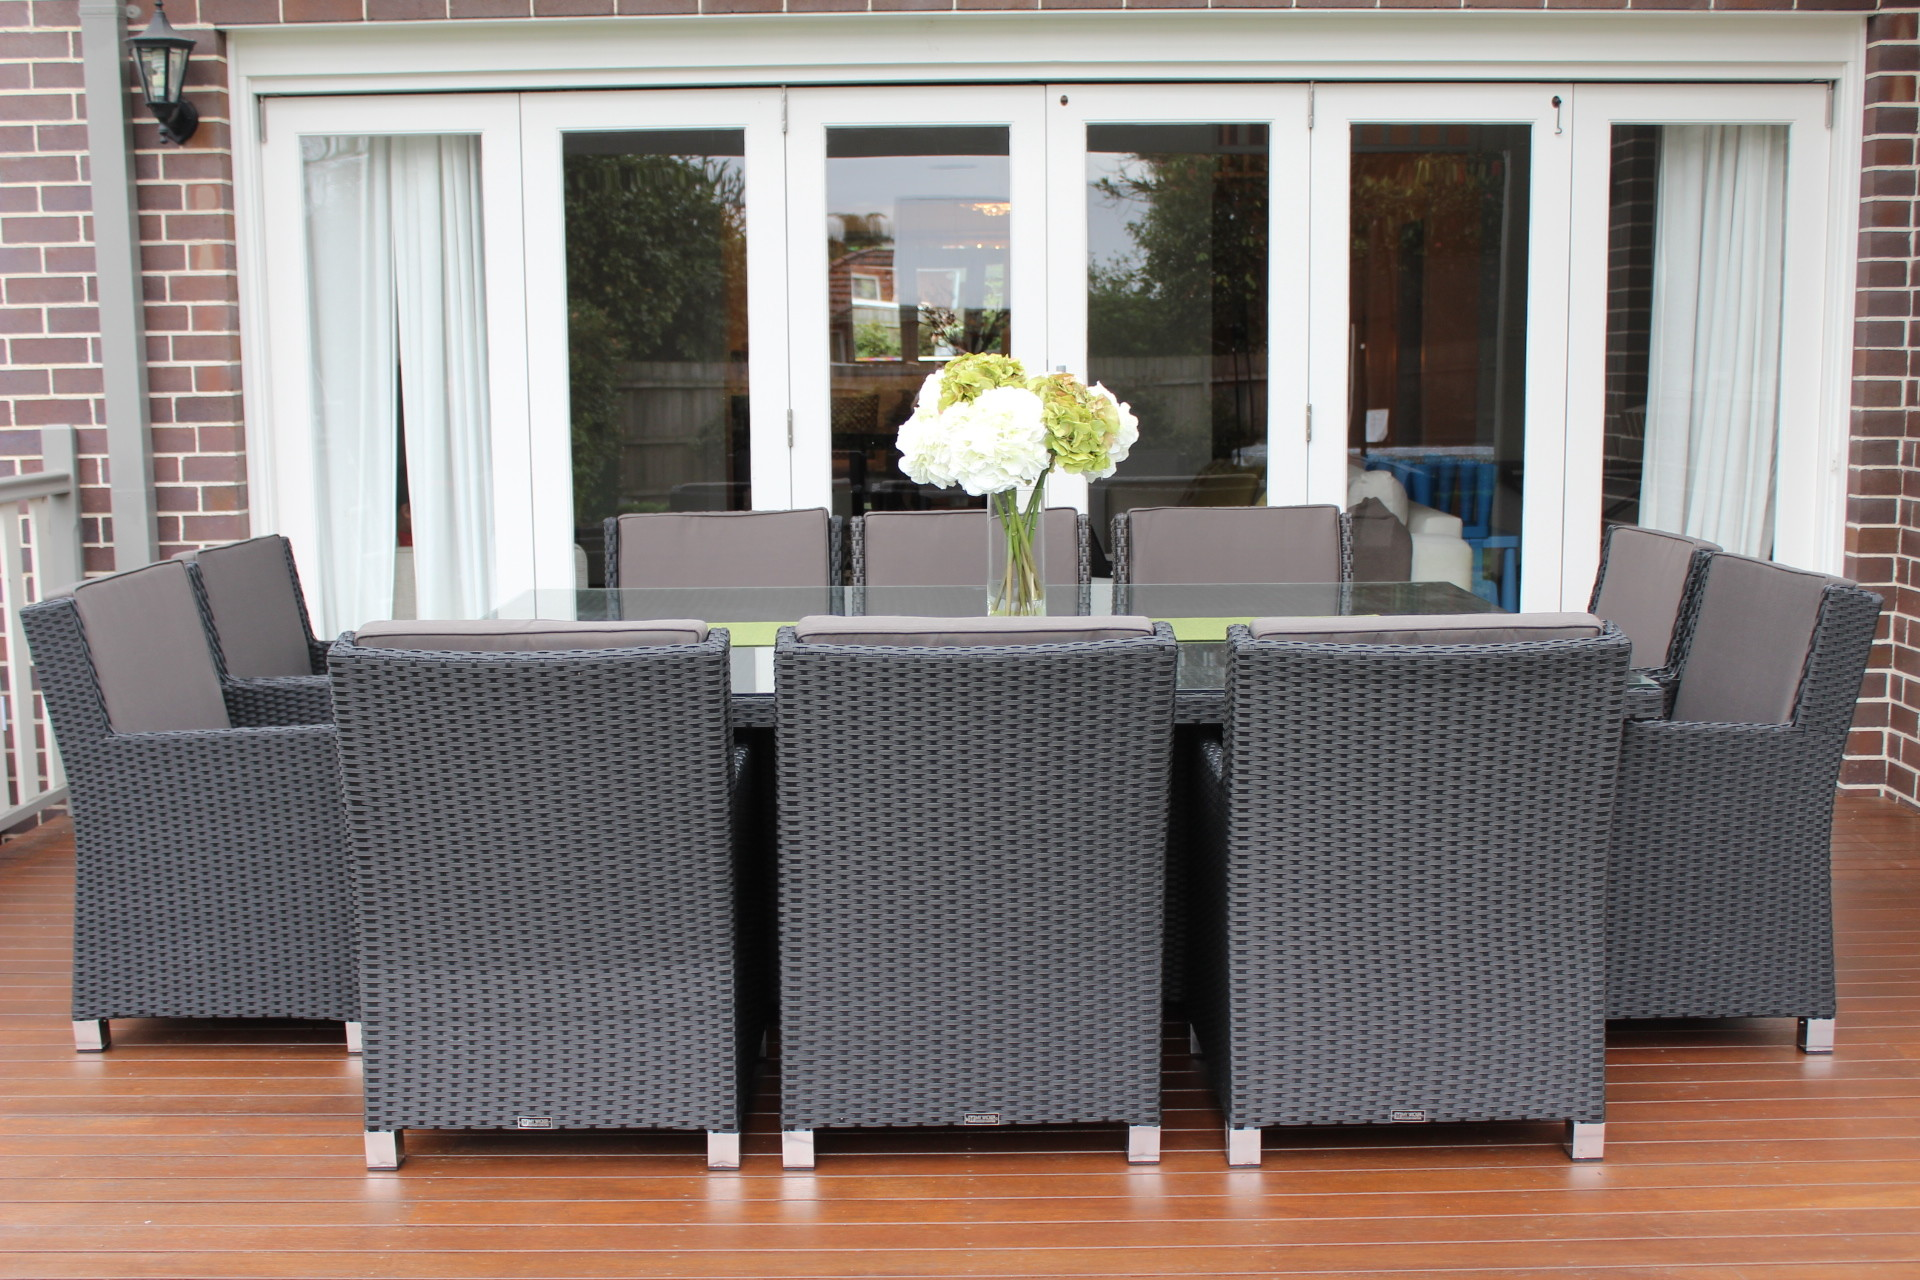 garden furniture penrith images guru royale  seater wicker dining  x: dining table that seats 10